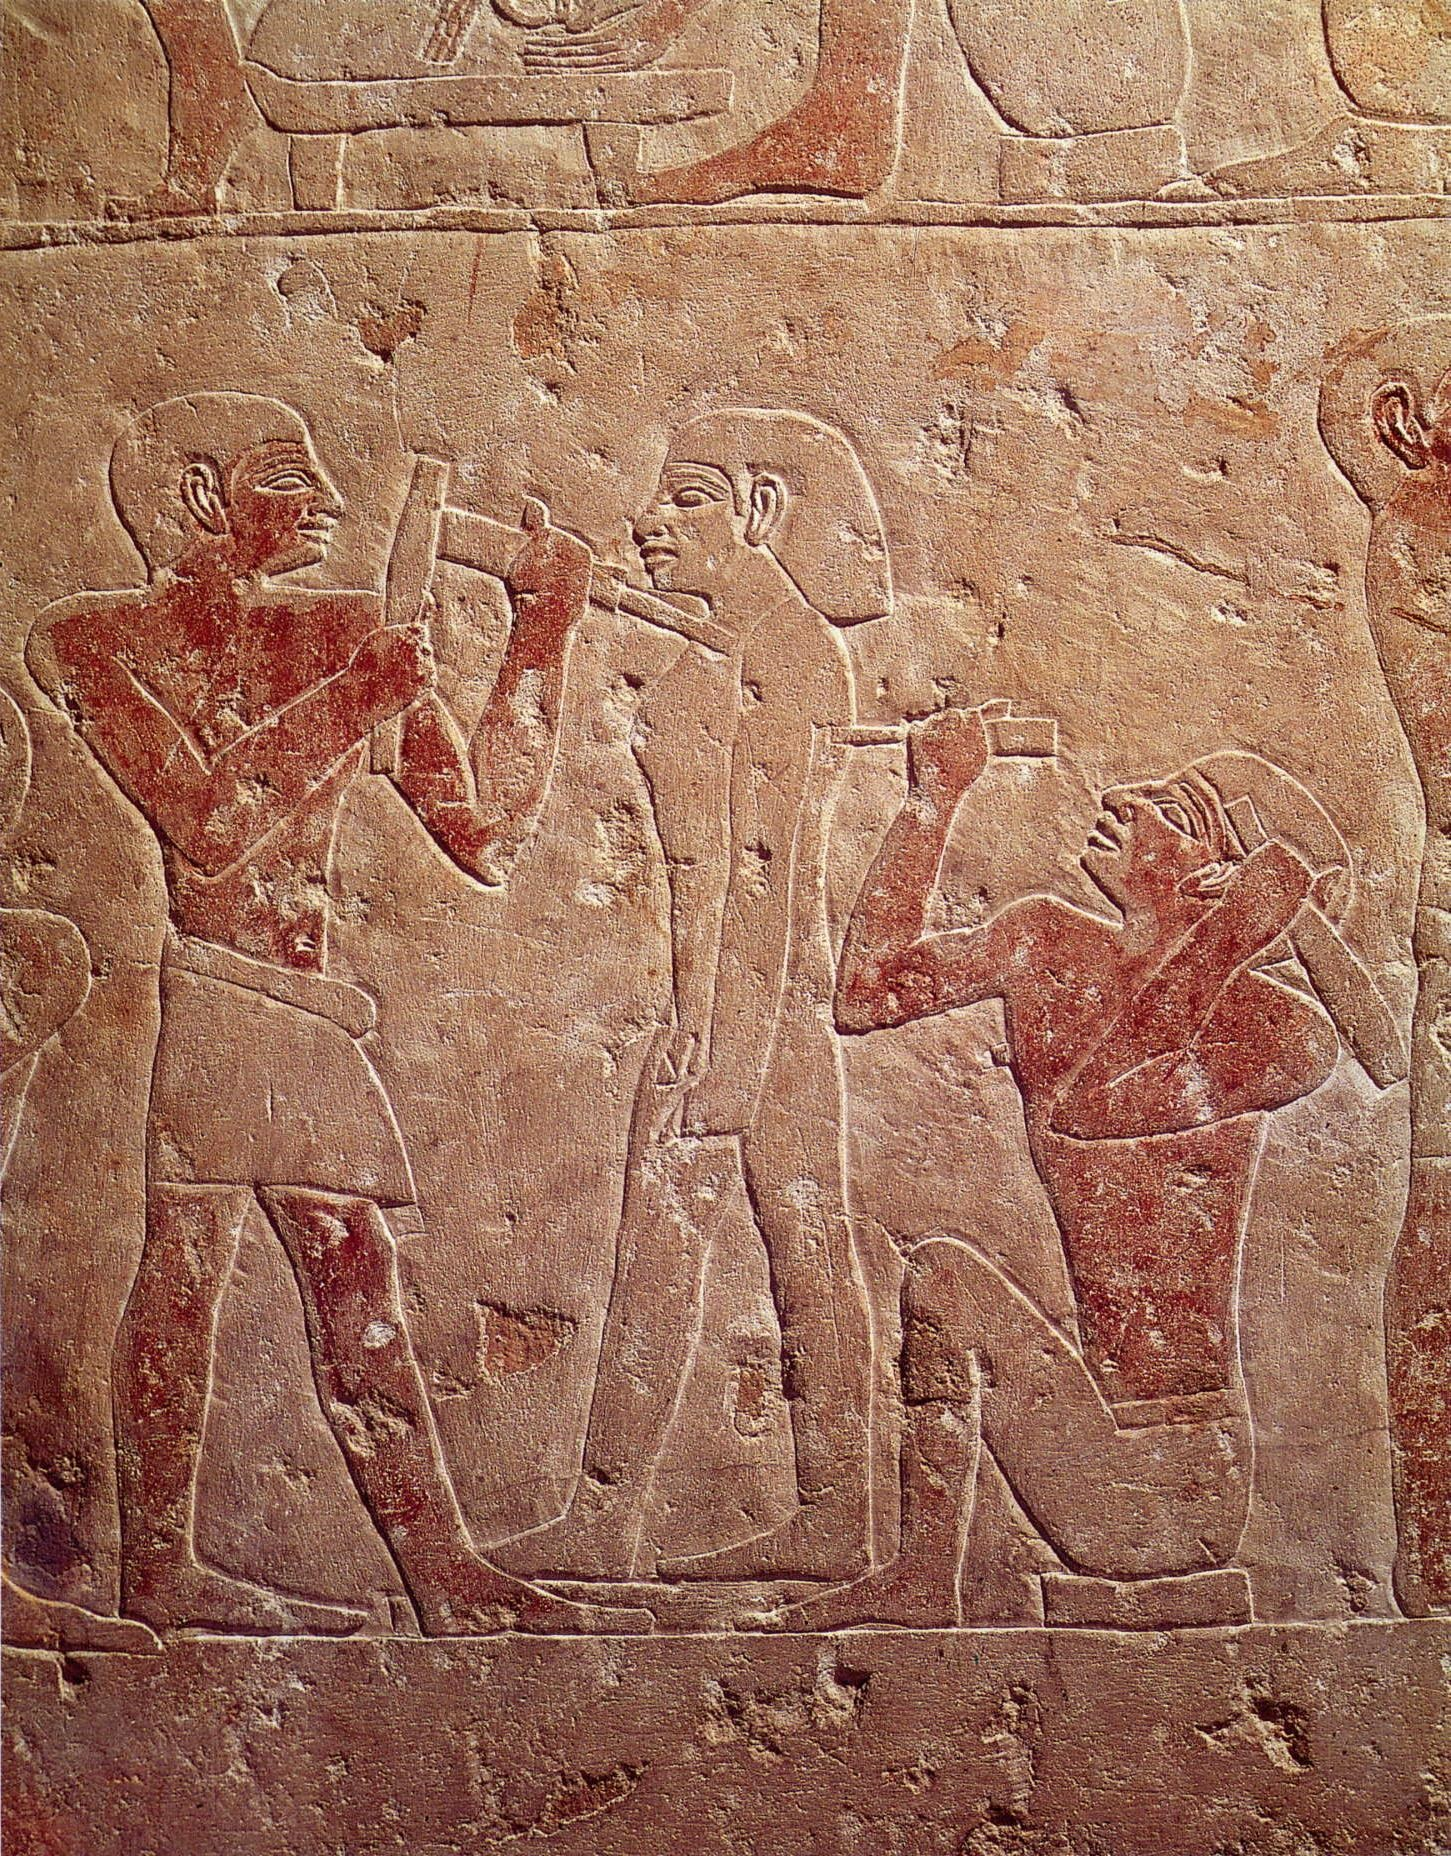 Two-Sculptors-Working-on-a-Statue-2510-2460-BC-Saqqara-Egyptian-Museum-Cairo 3B - Mastaba of  Kaemrehu.jpg